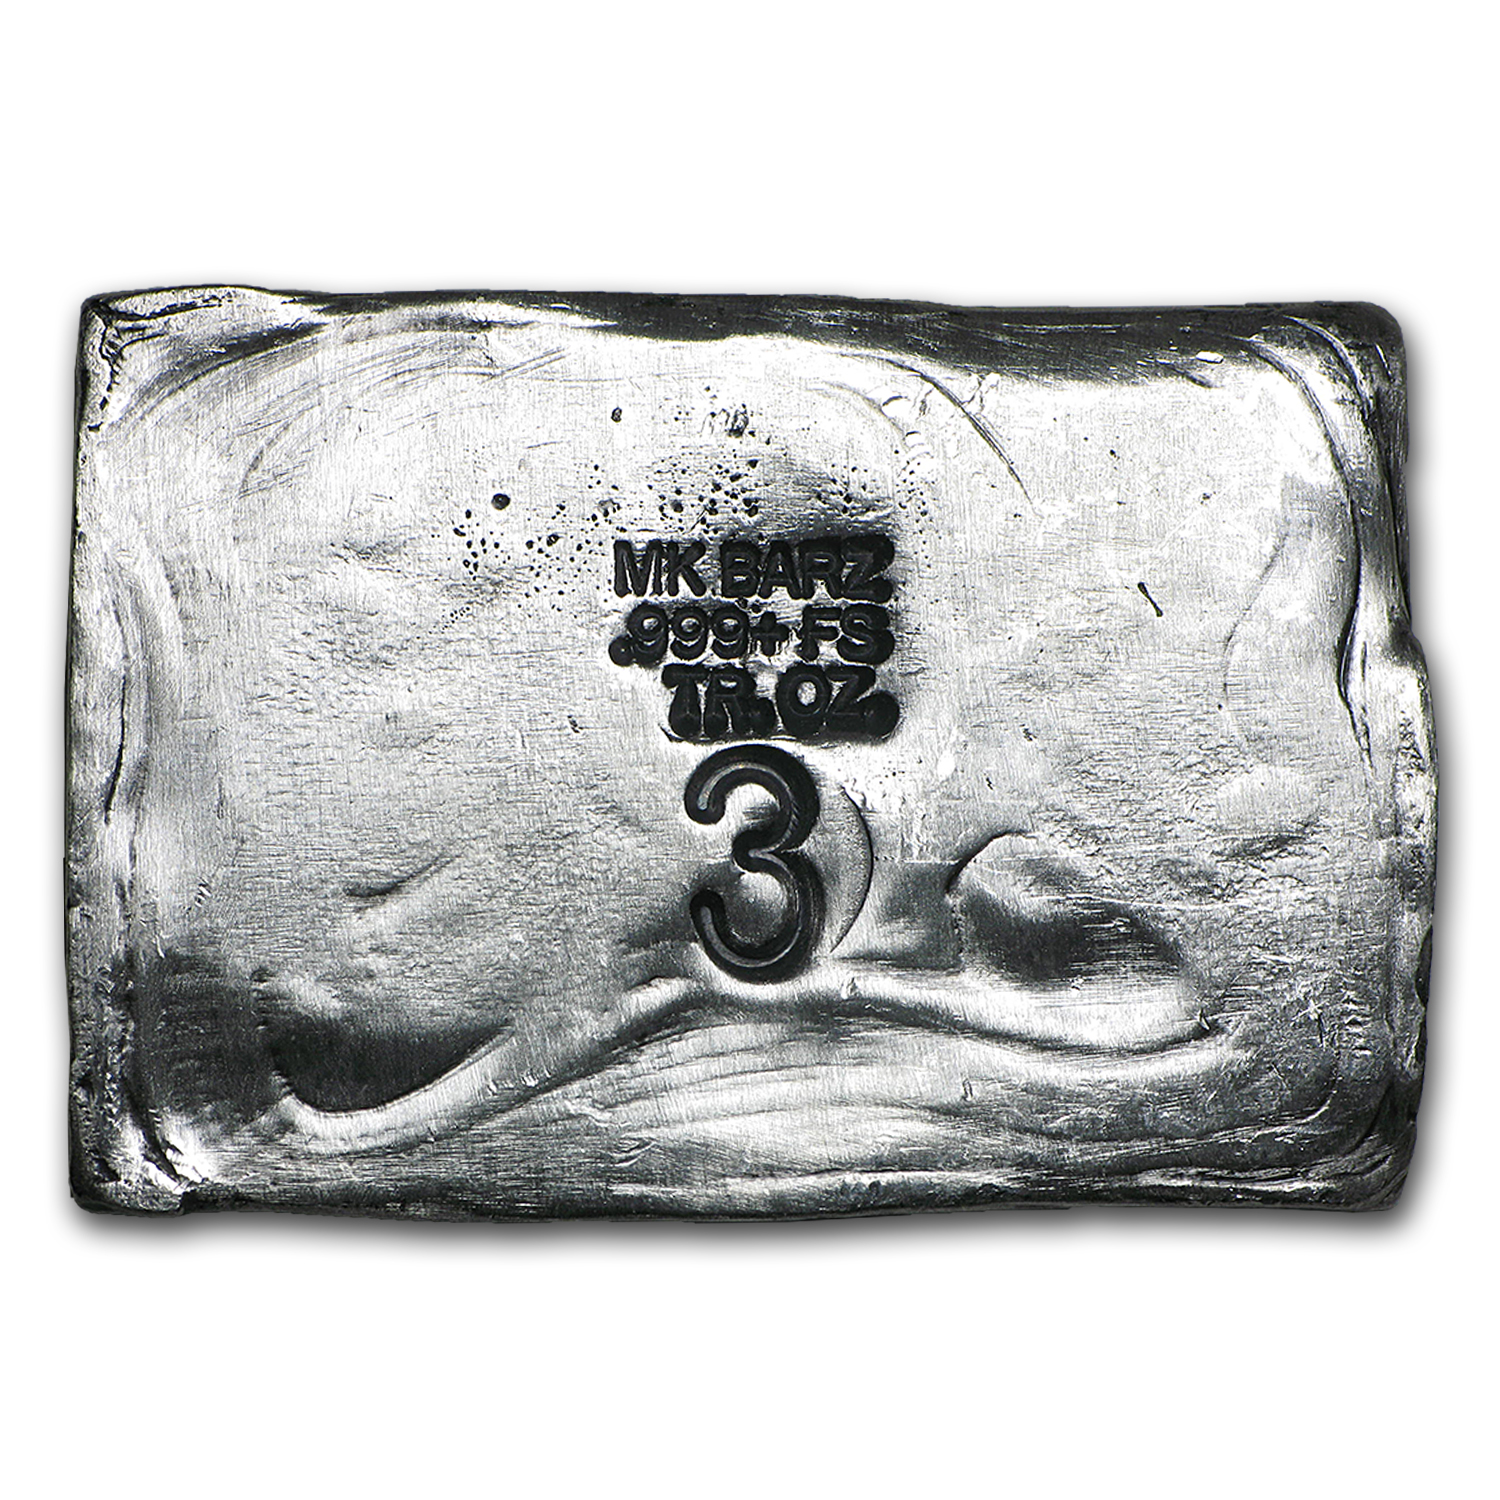 3 oz Silver Bar - Pirate Skull (Limited Edition, Jolly Roger)